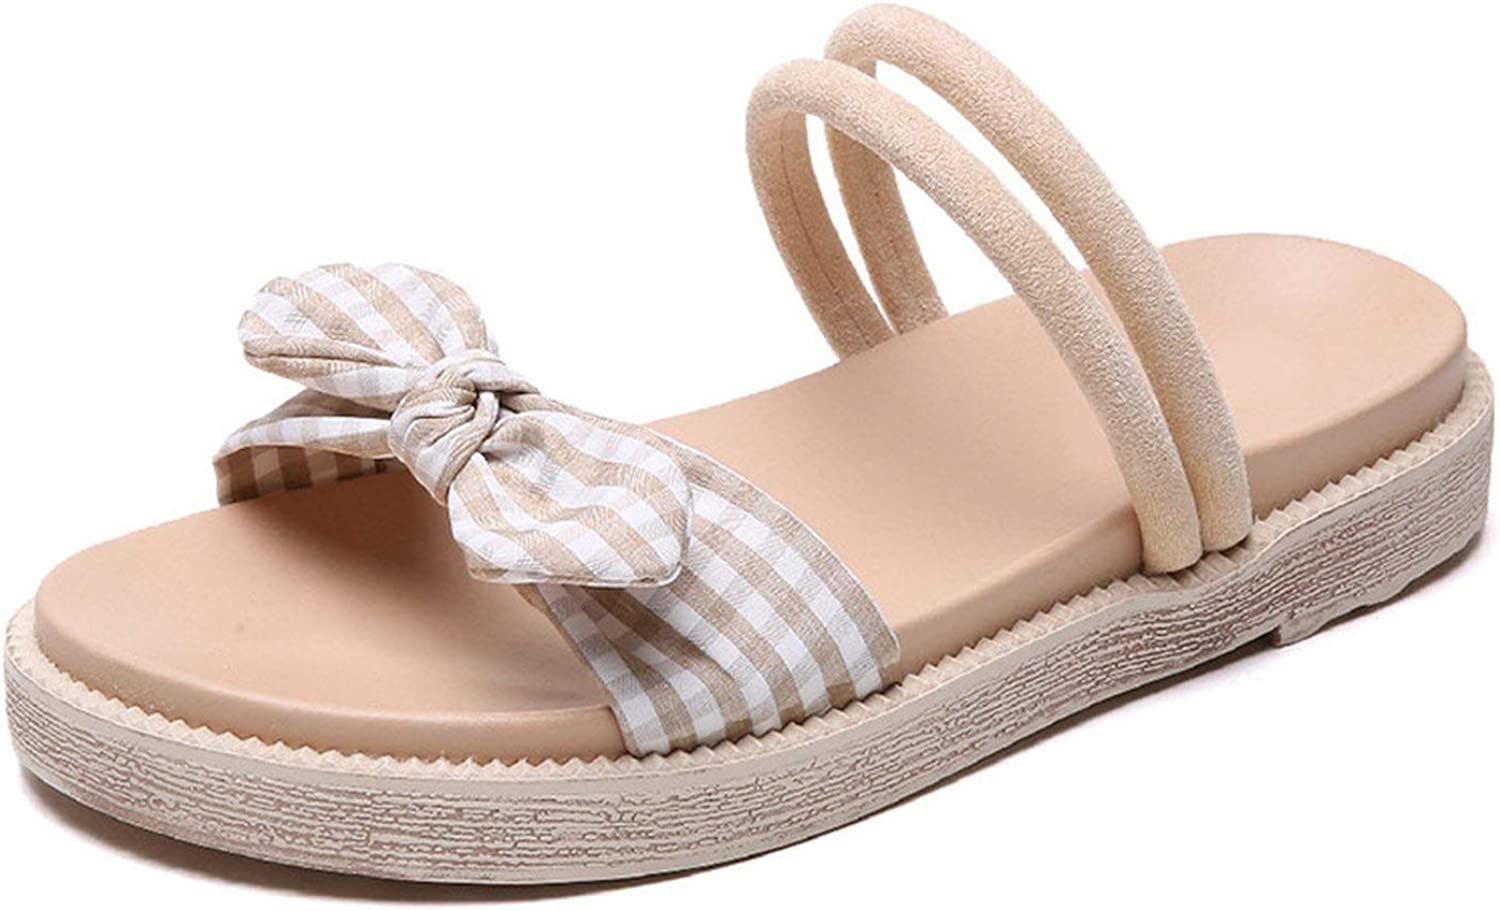 Women Beach Slippers Platform shoes Woman Bowknot Style Slip On Sandals Female Slides Ladi,